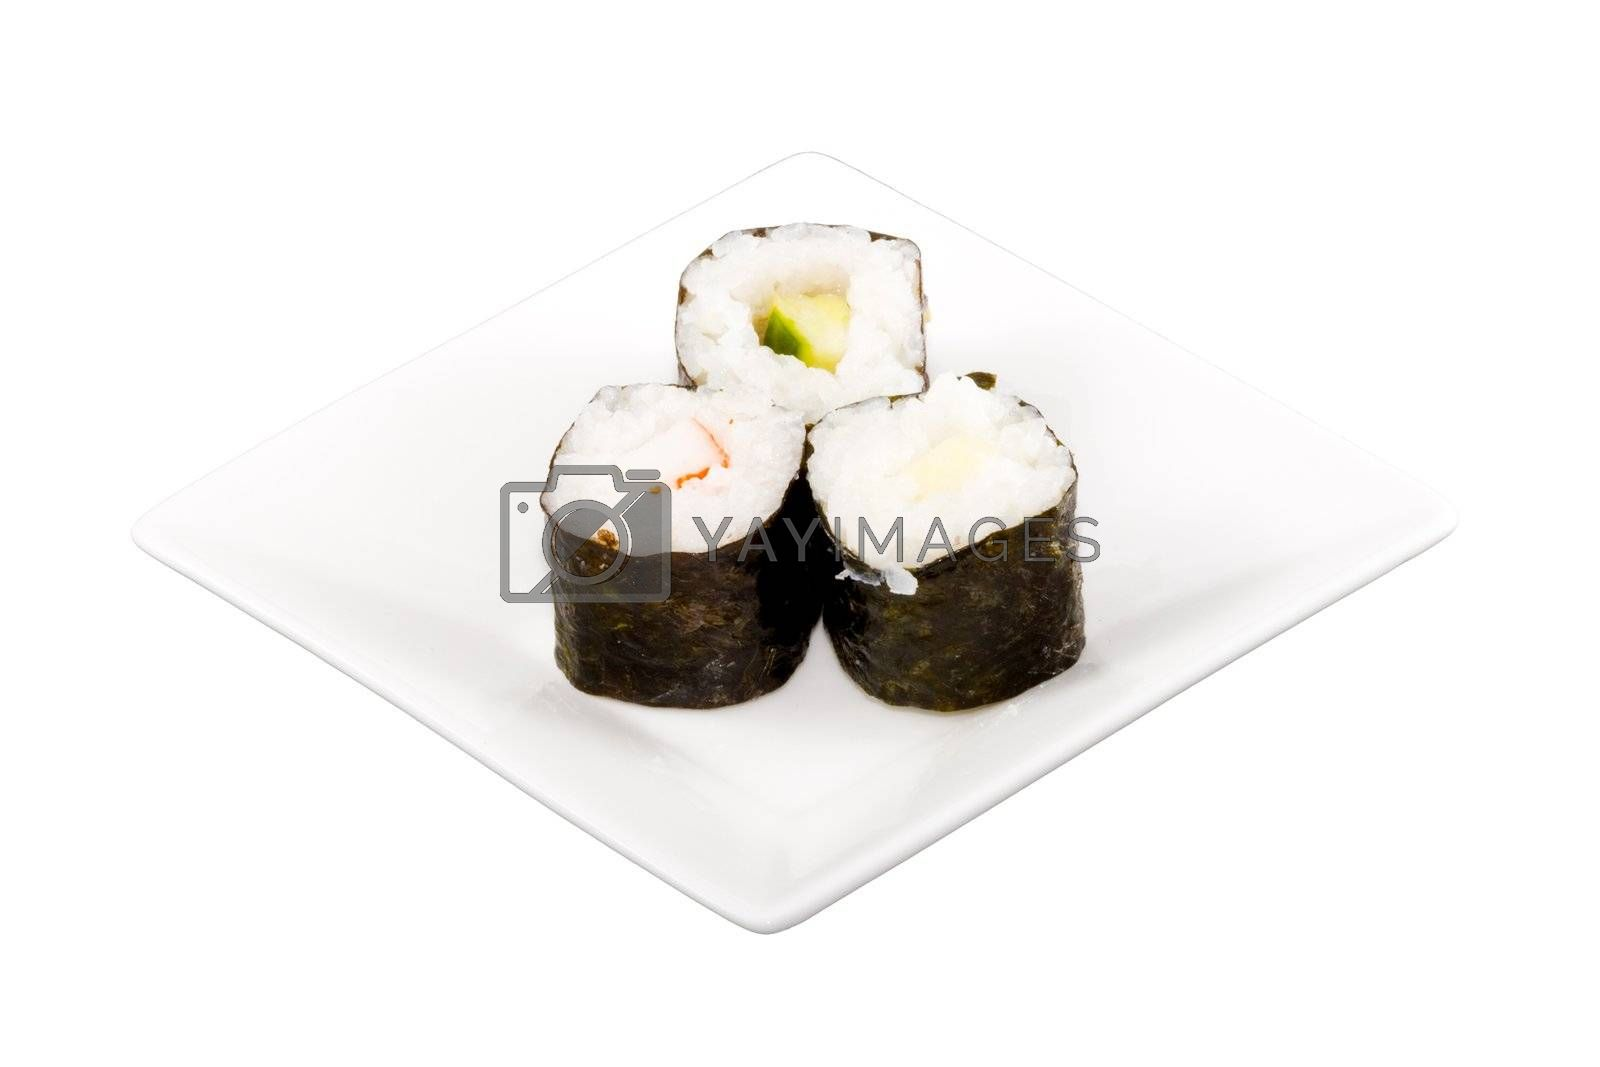 a square white plate with three pieces of sushi